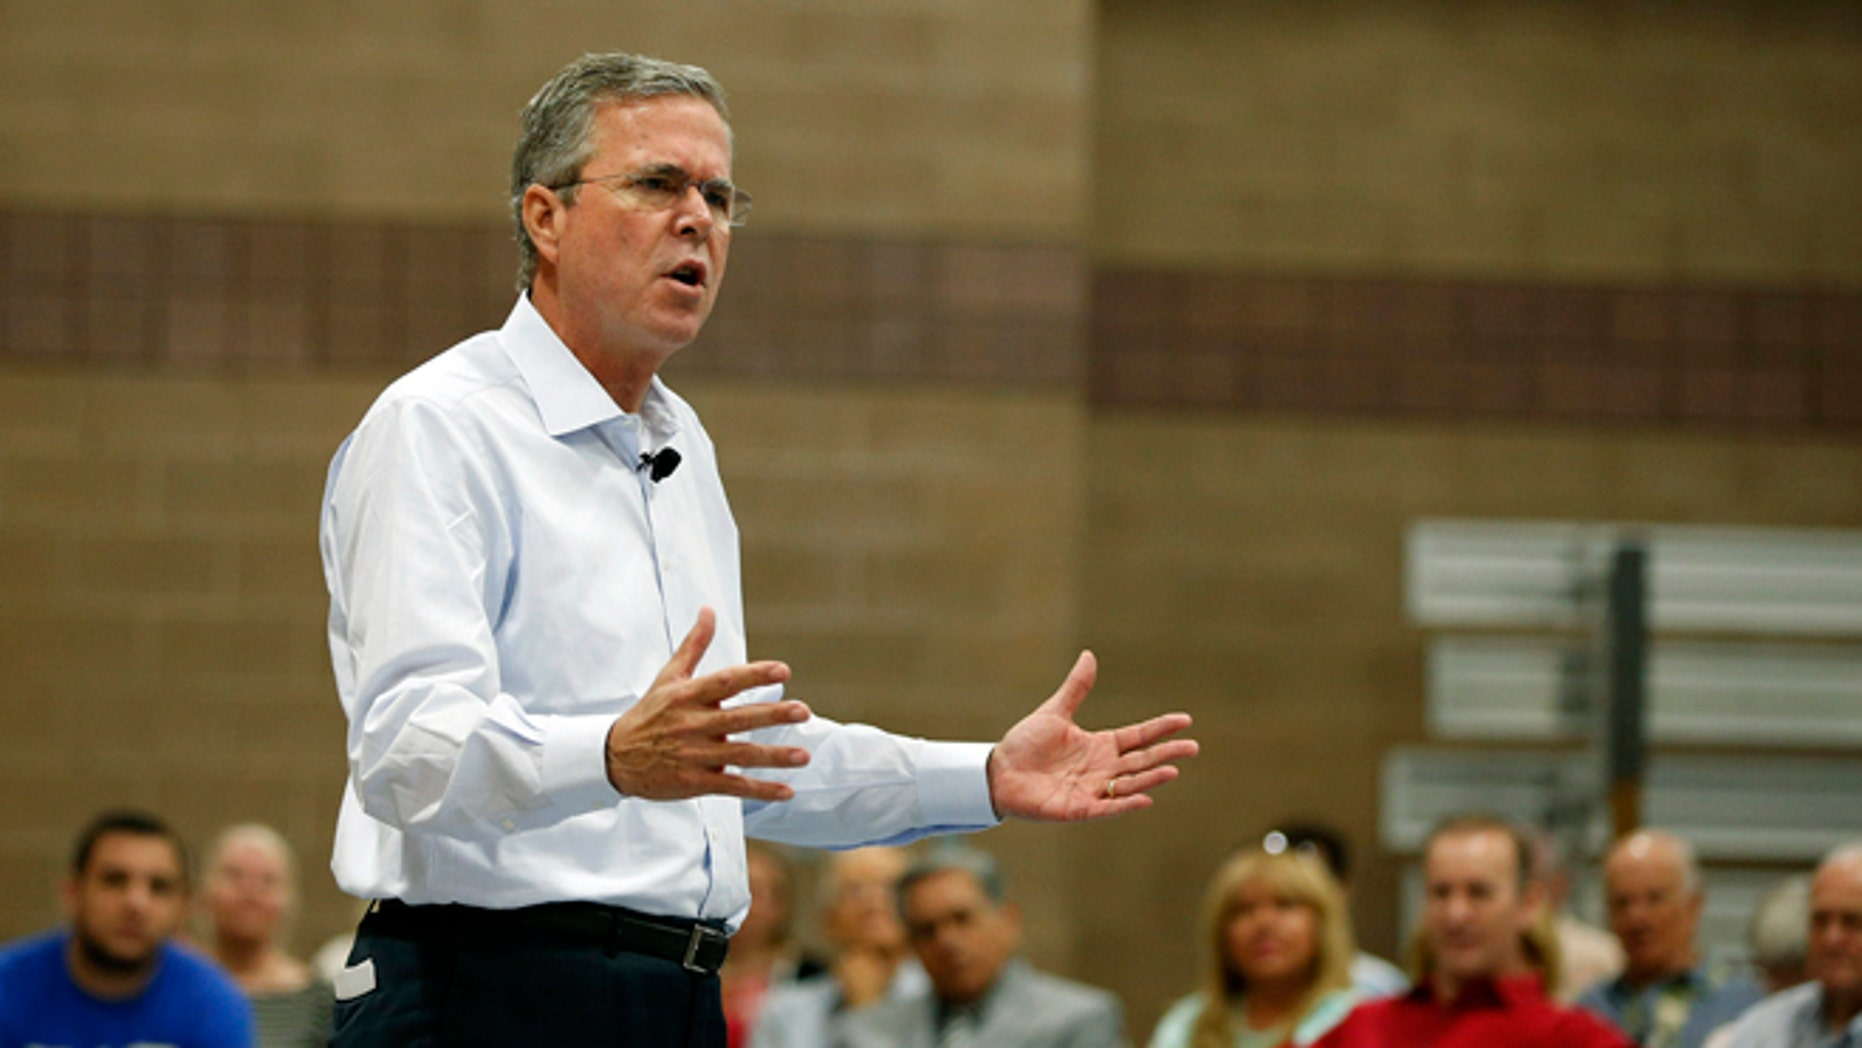 Republican presidential candidate, former Florida Gov. Jeb Bush speaks at a campaign event Saturday, June 27, 2015, in Henderson, Nev. (AP Photo/John Locher)